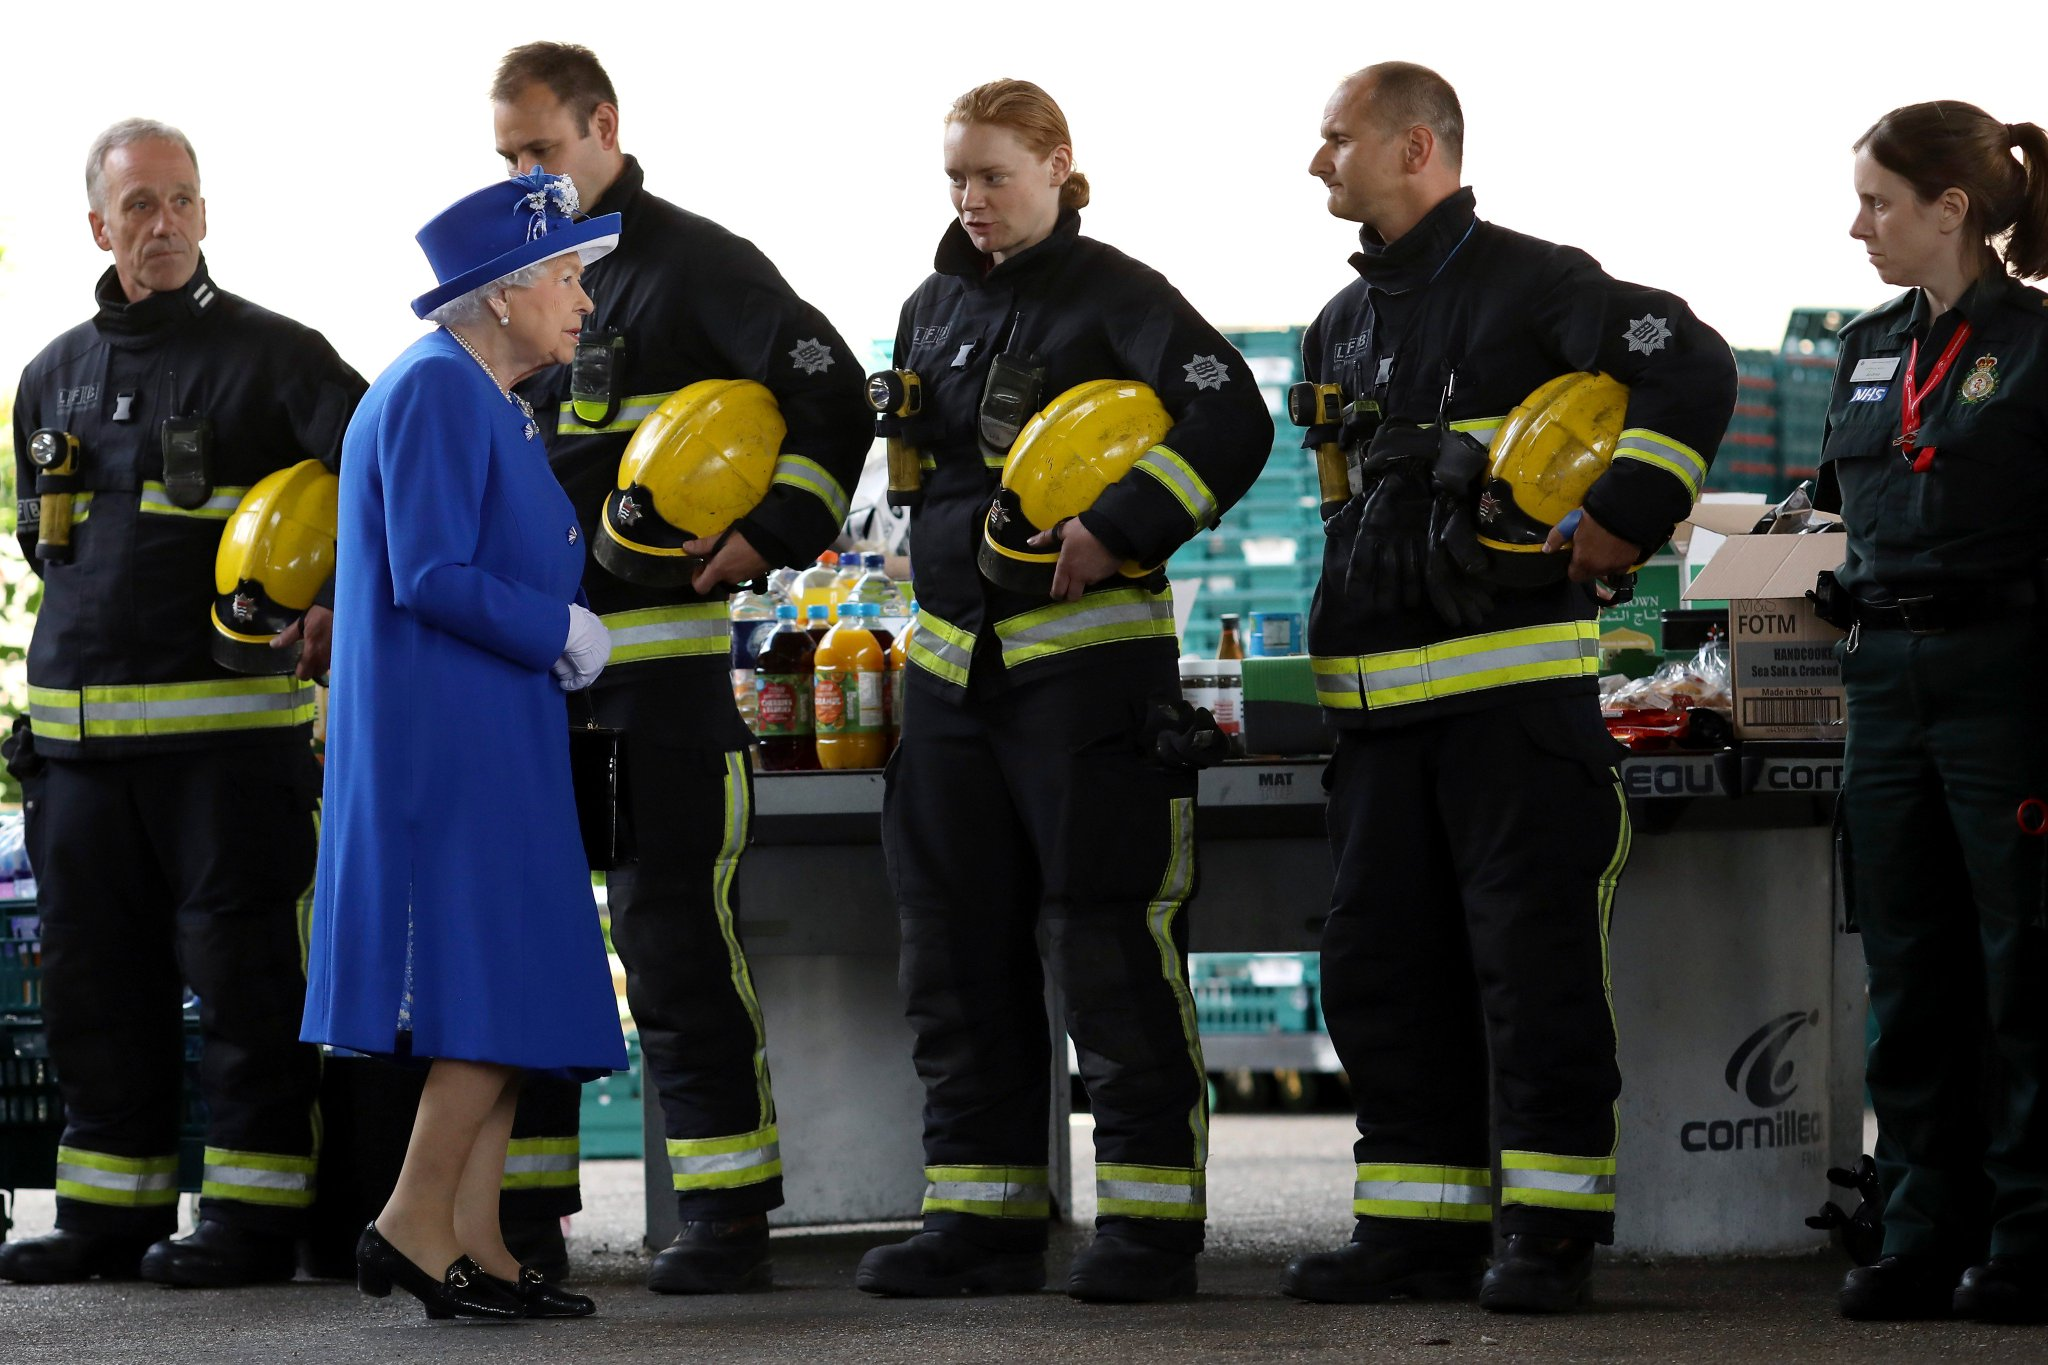 The Queen meets some heroes....  #GrenfellTower https://t.co/hYejDvk7uf